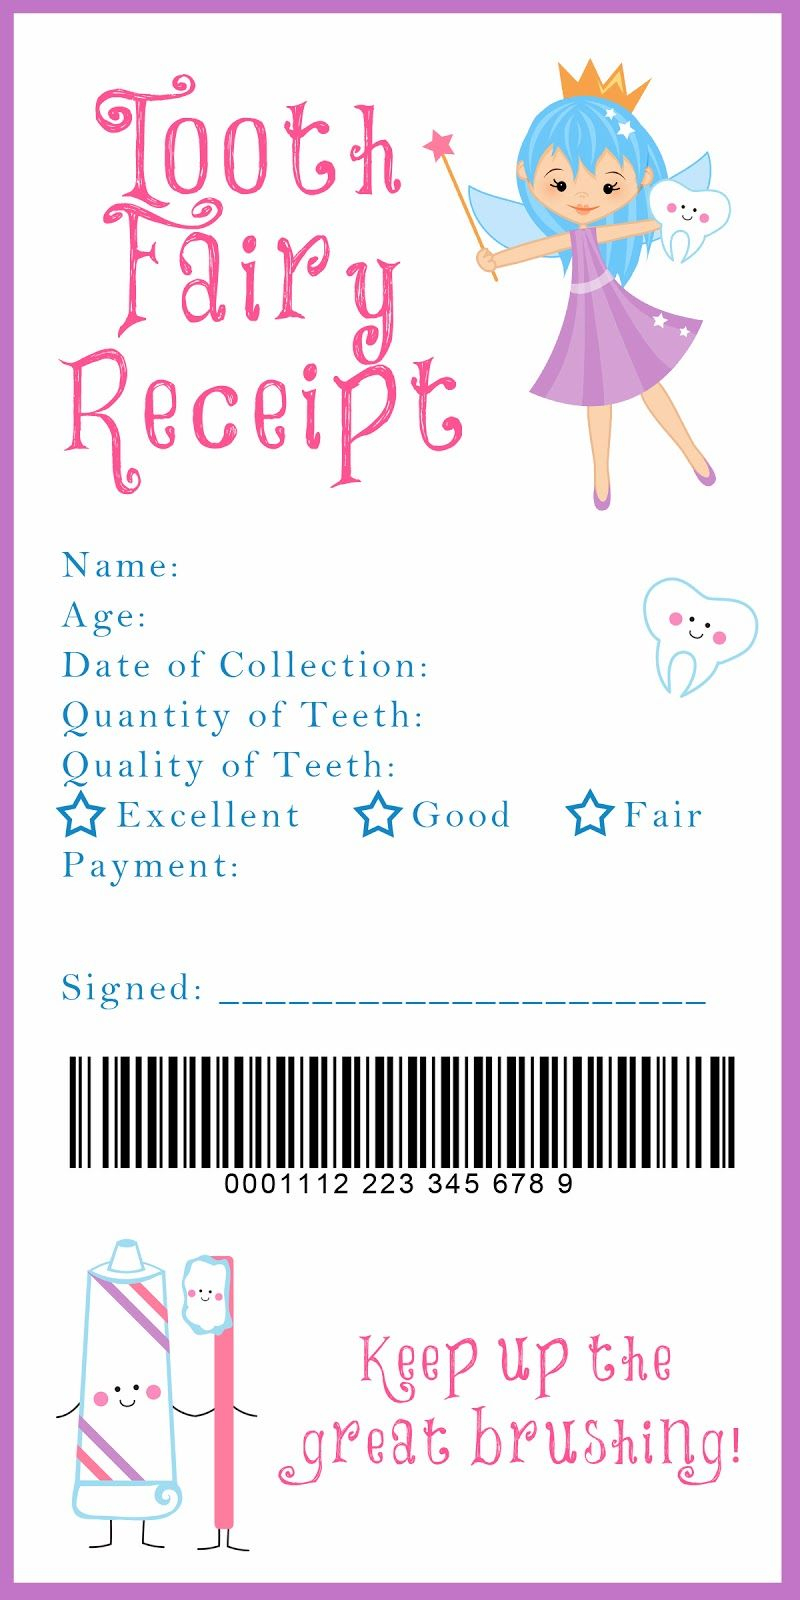 Tooth Fairy Receipt And Many Other Awesome Printables | Xixi <3 - Free Printable Tooth Fairy Letter And Envelope